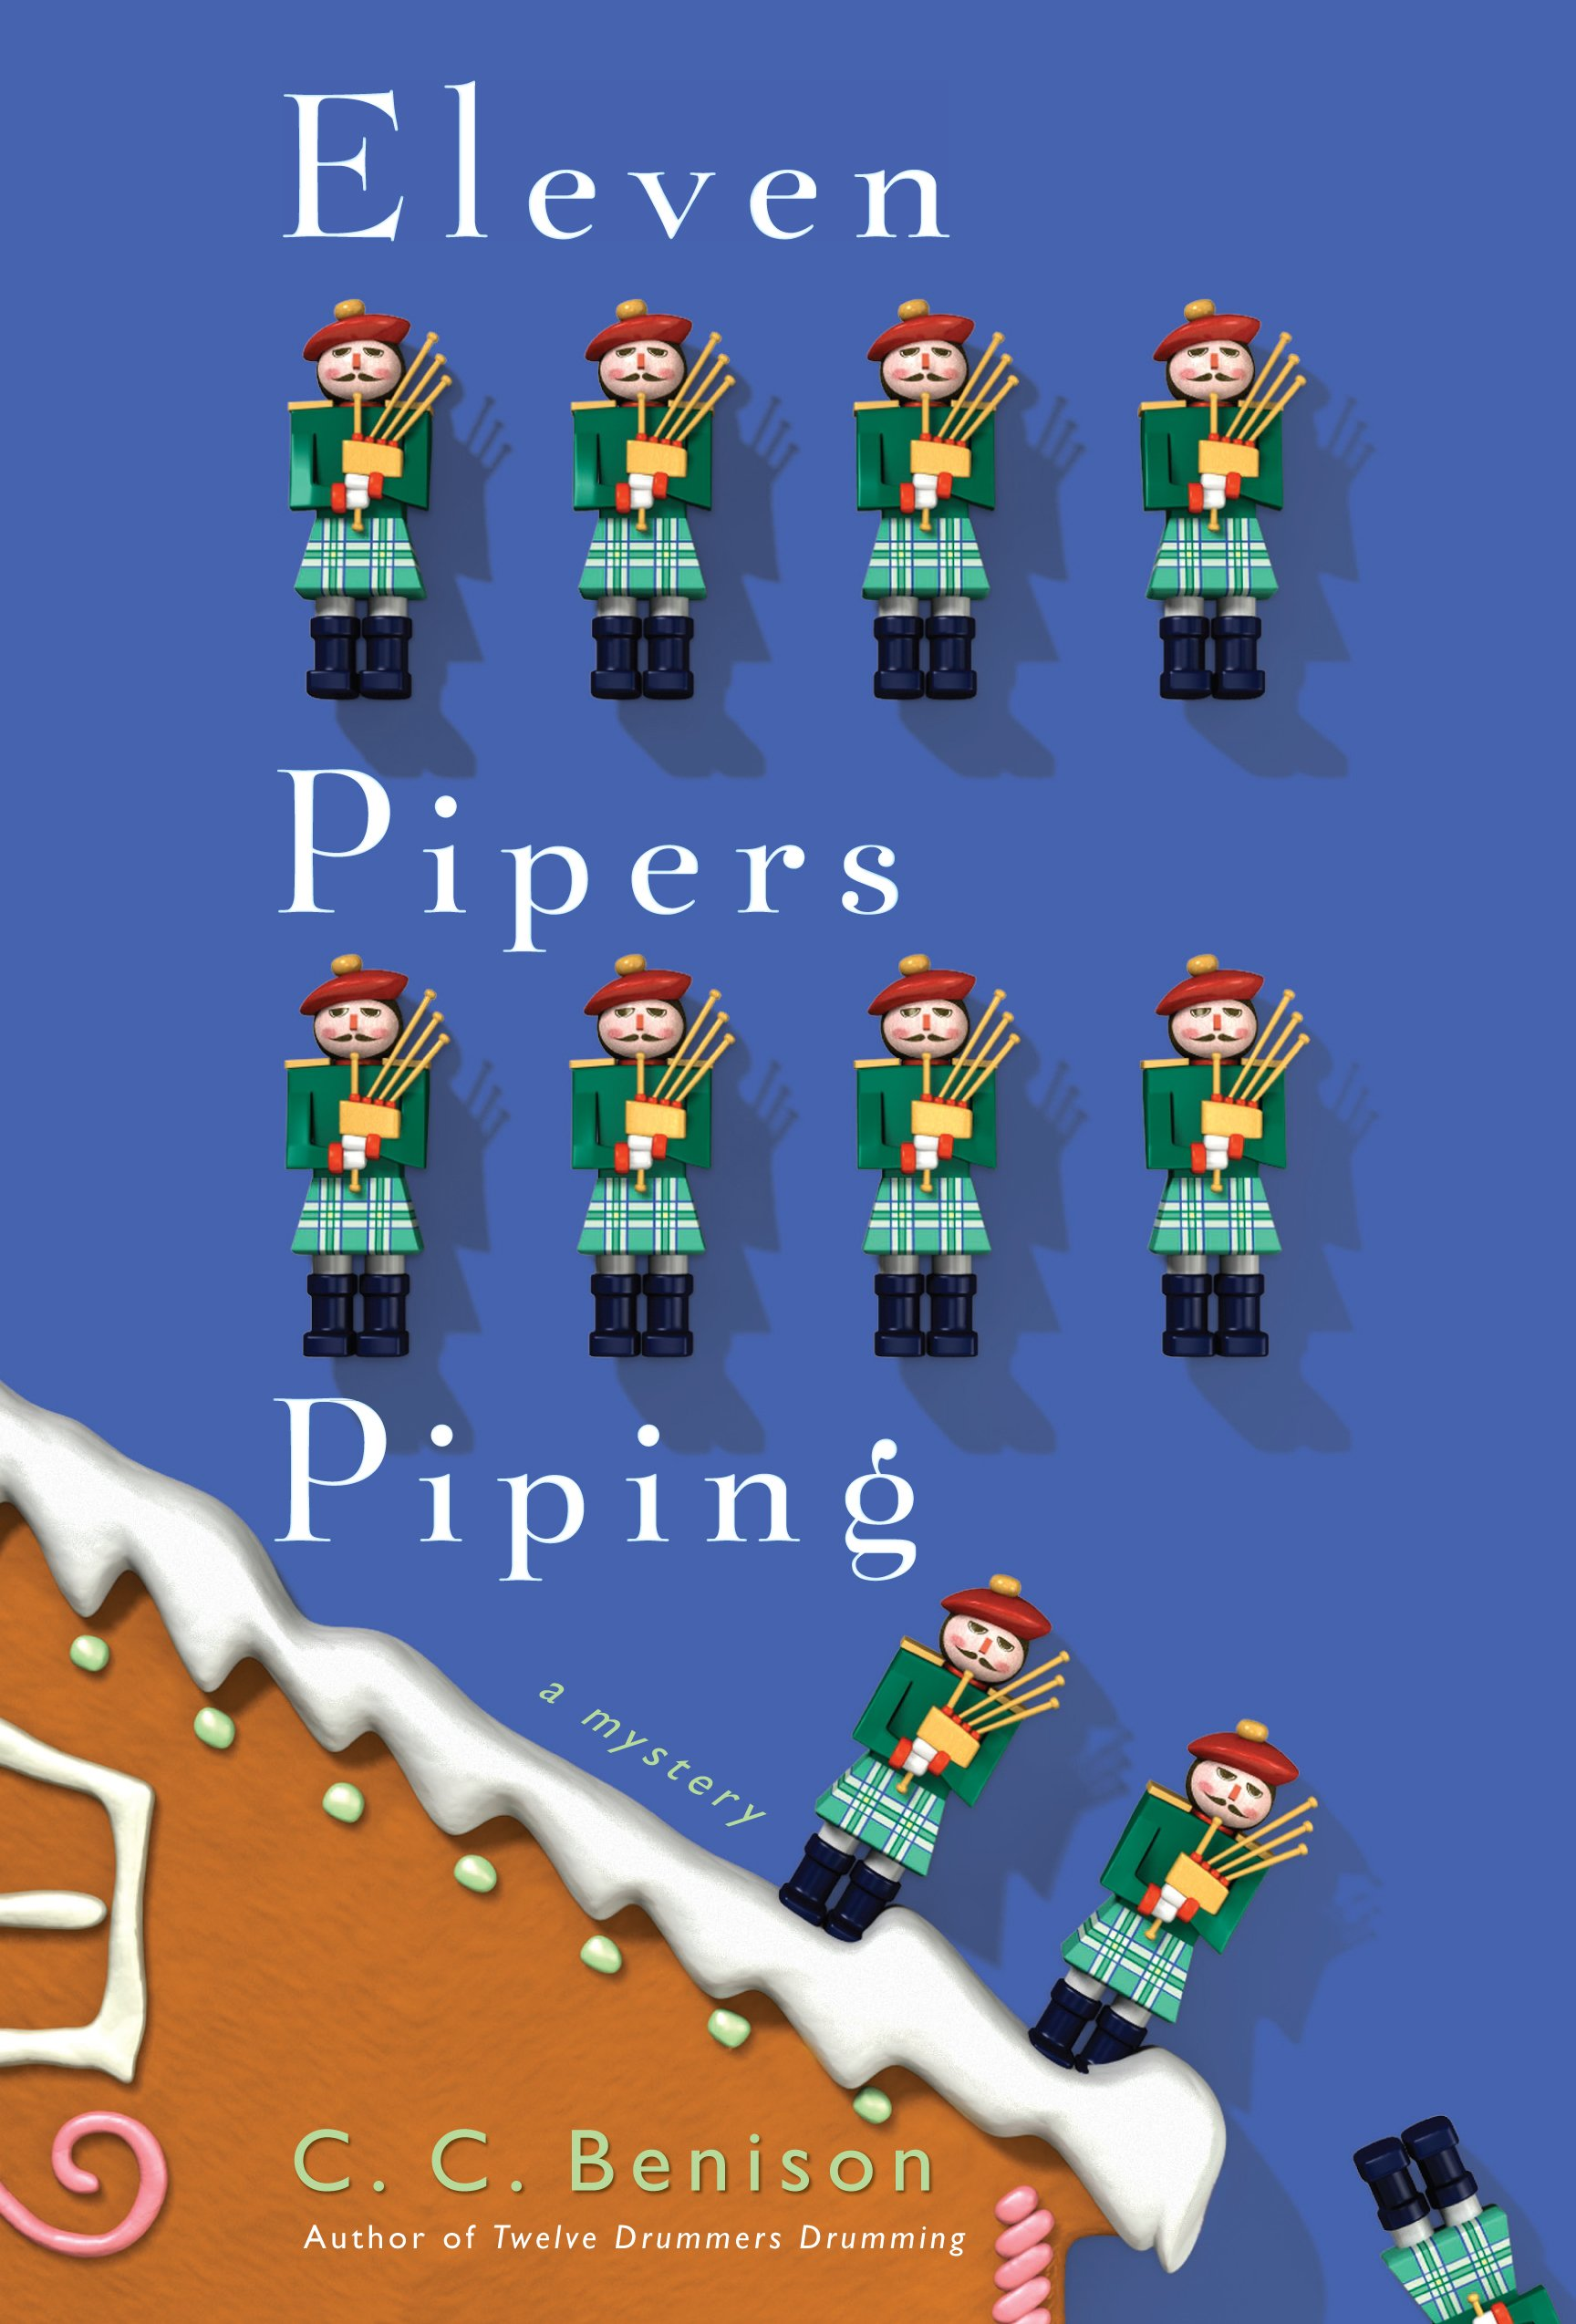 Download Eleven Pipers Piping: A Father Christmas Mystery (Thorndike Press large print mystery: A Father Christmas Mystery) pdf epub